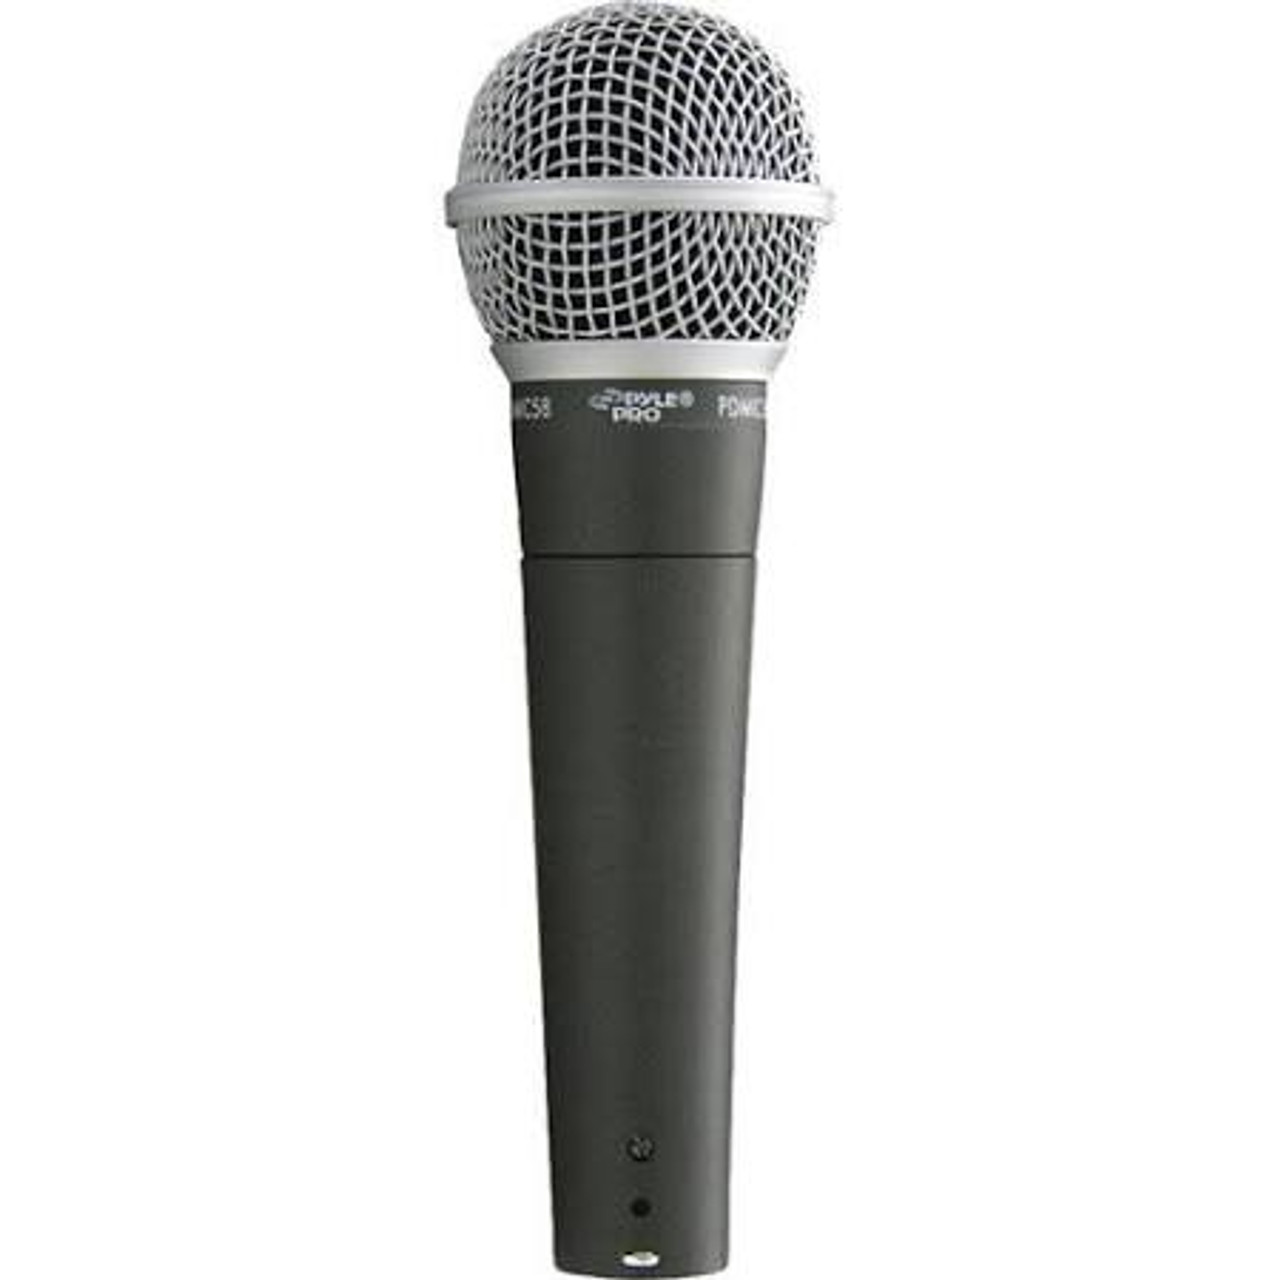 Anchor Audio Wired Handheld Mic (MIC-90)